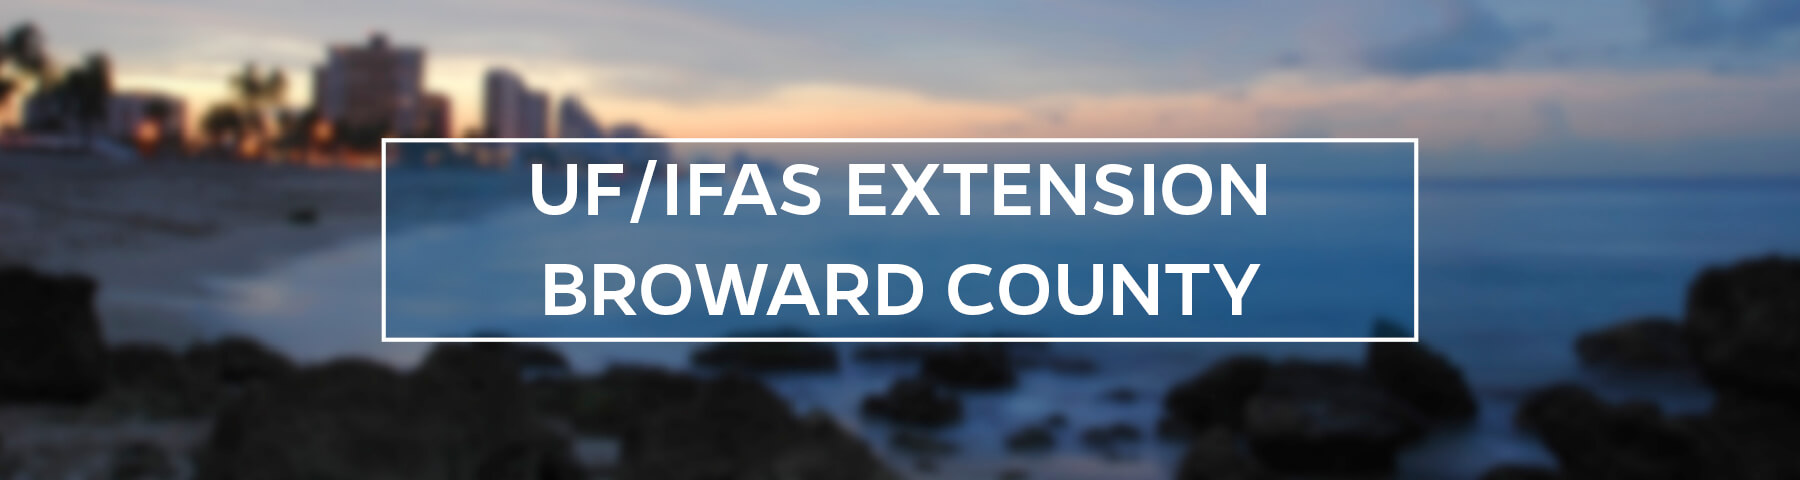 UF/IFAS Extension Broward County